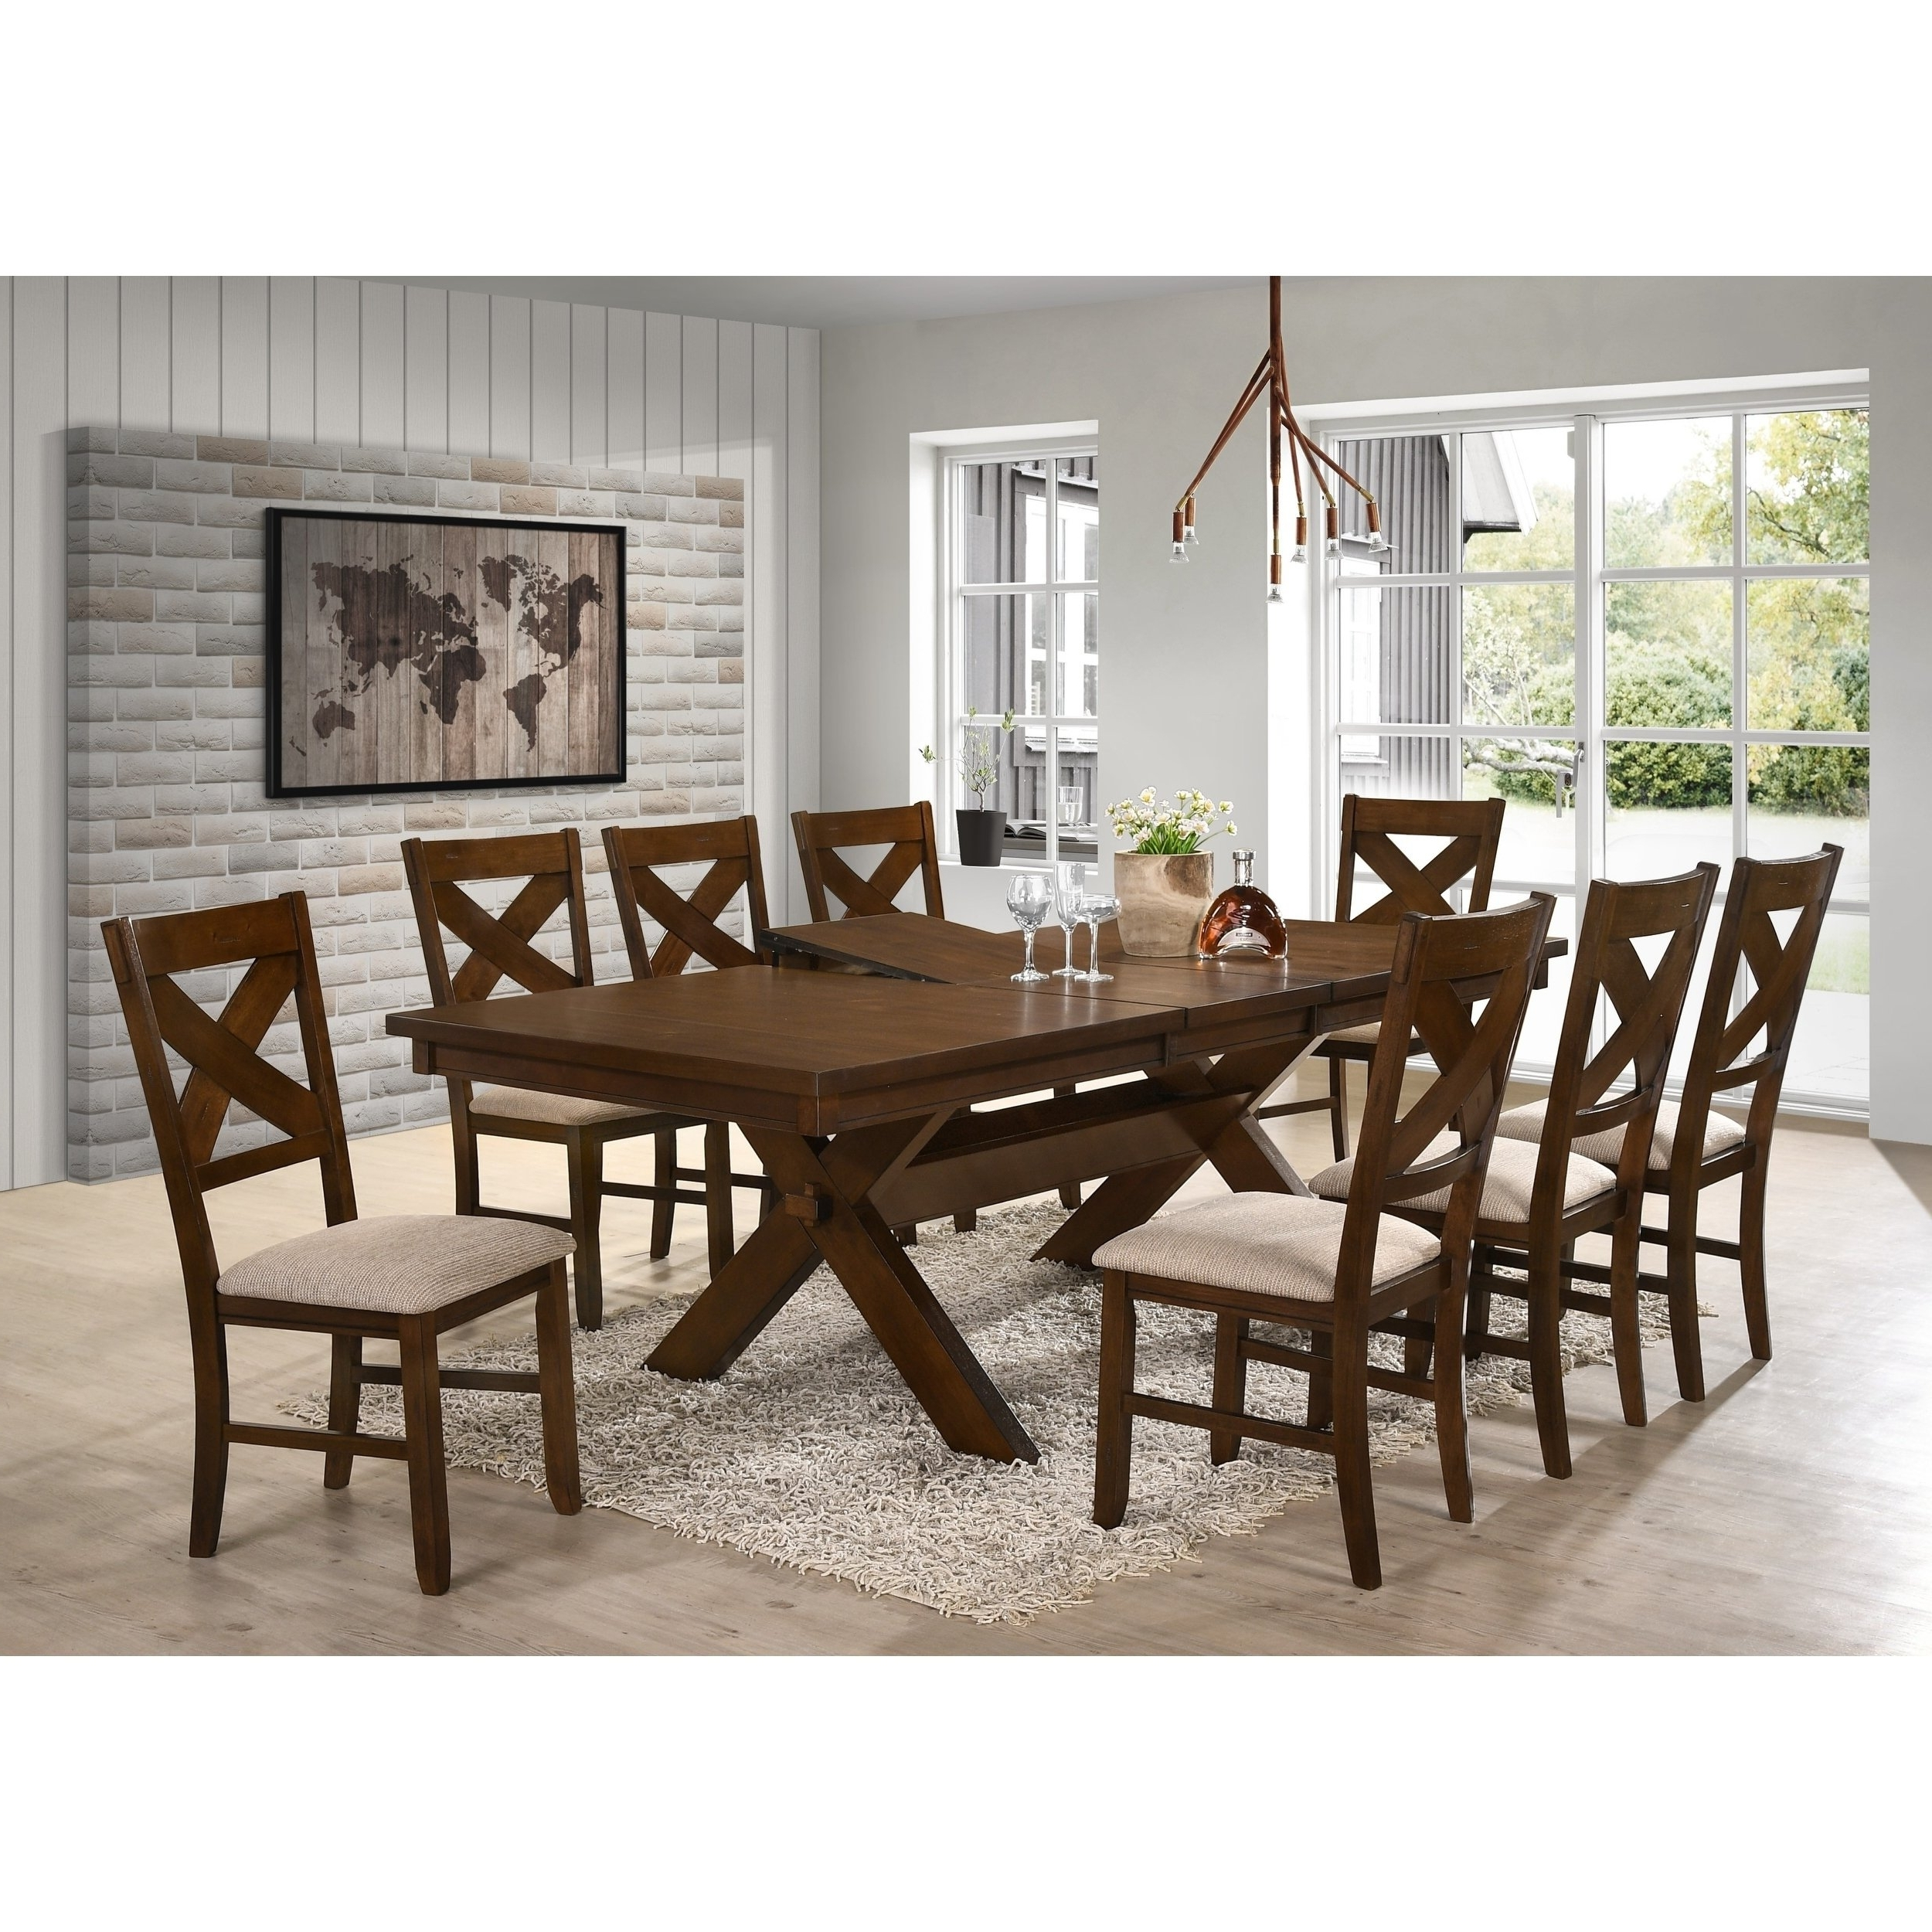 Dining Tables And 8 Chairs Regarding Popular Shop 9 Piece Solid Wood Dining Set With Table And 8 Chairs – Free (View 9 of 25)